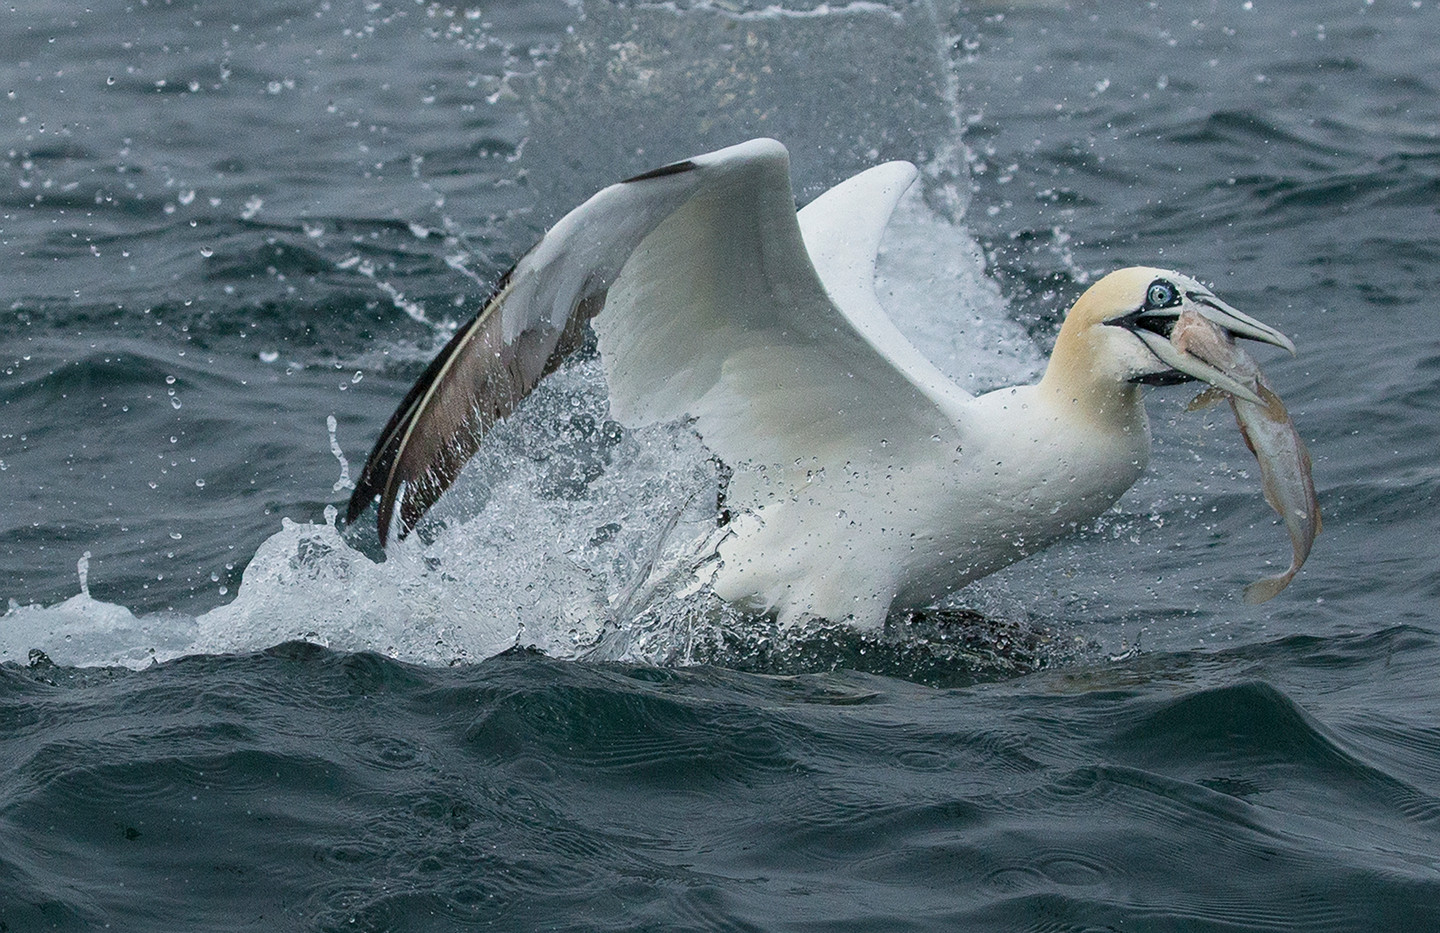 17 GANNET WITH SUCCESSFUL CATCH by John Hunt